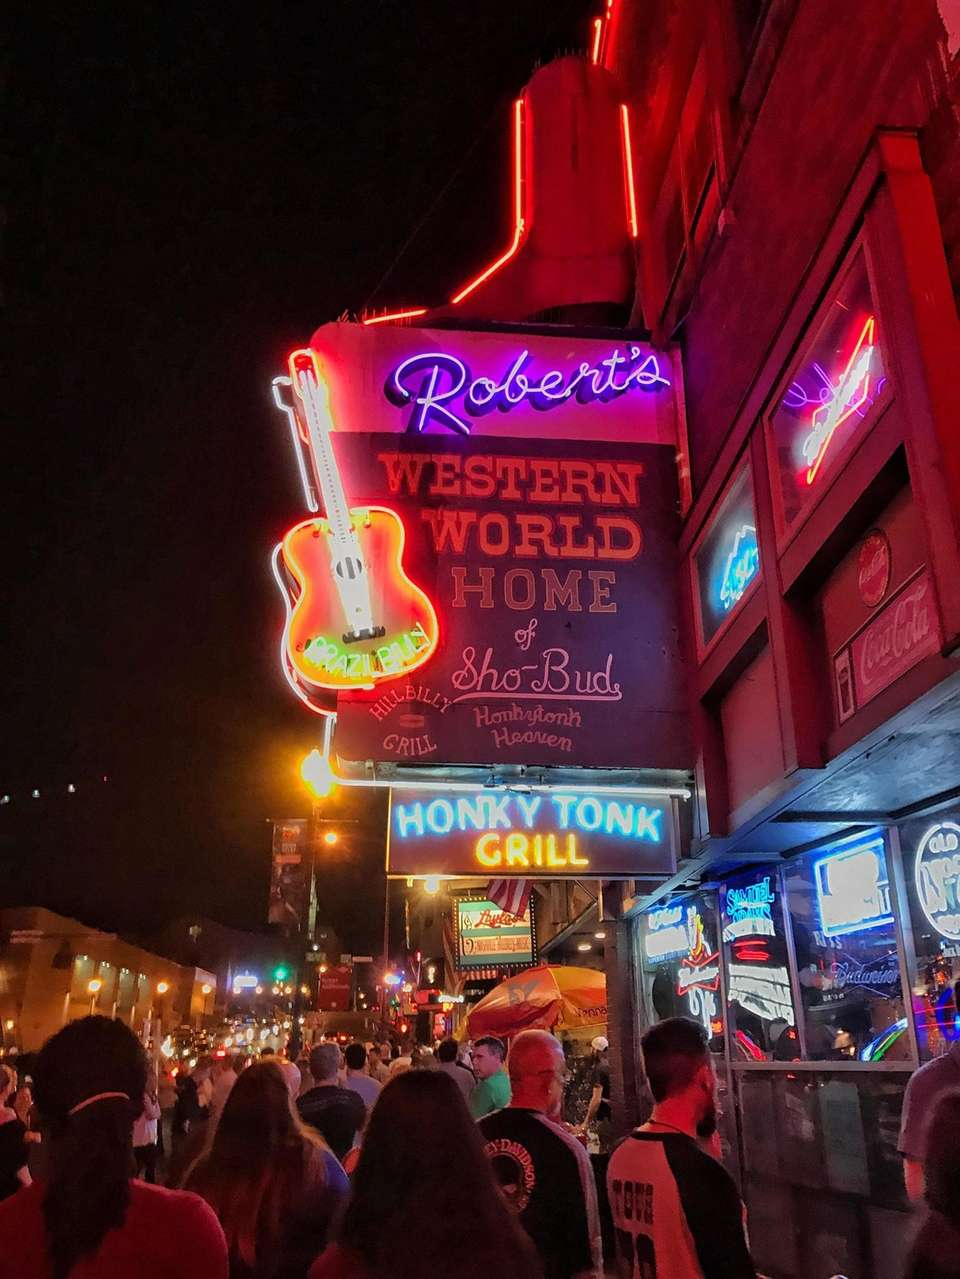 Neon signs for the honky tonks, restaurants and